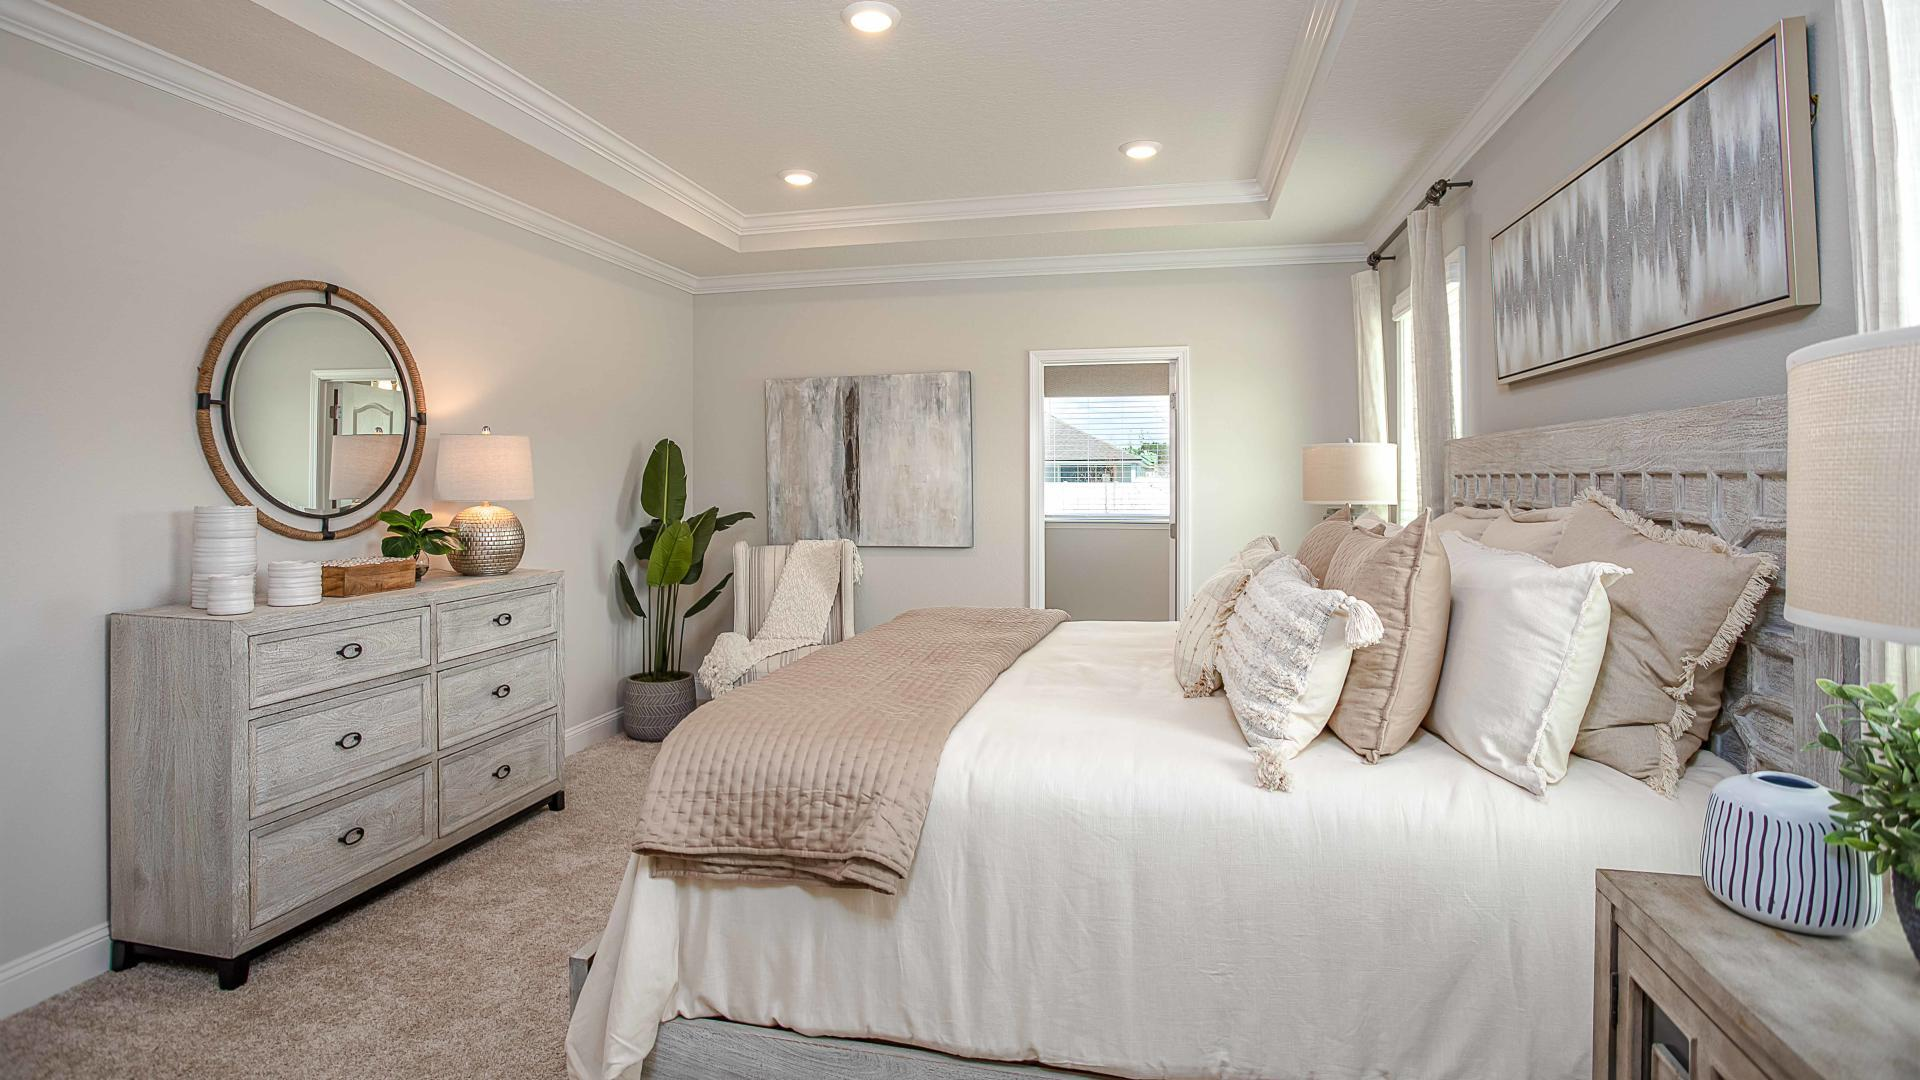 Bedroom featured in the Huntington By Maronda Homes in Ocala, FL